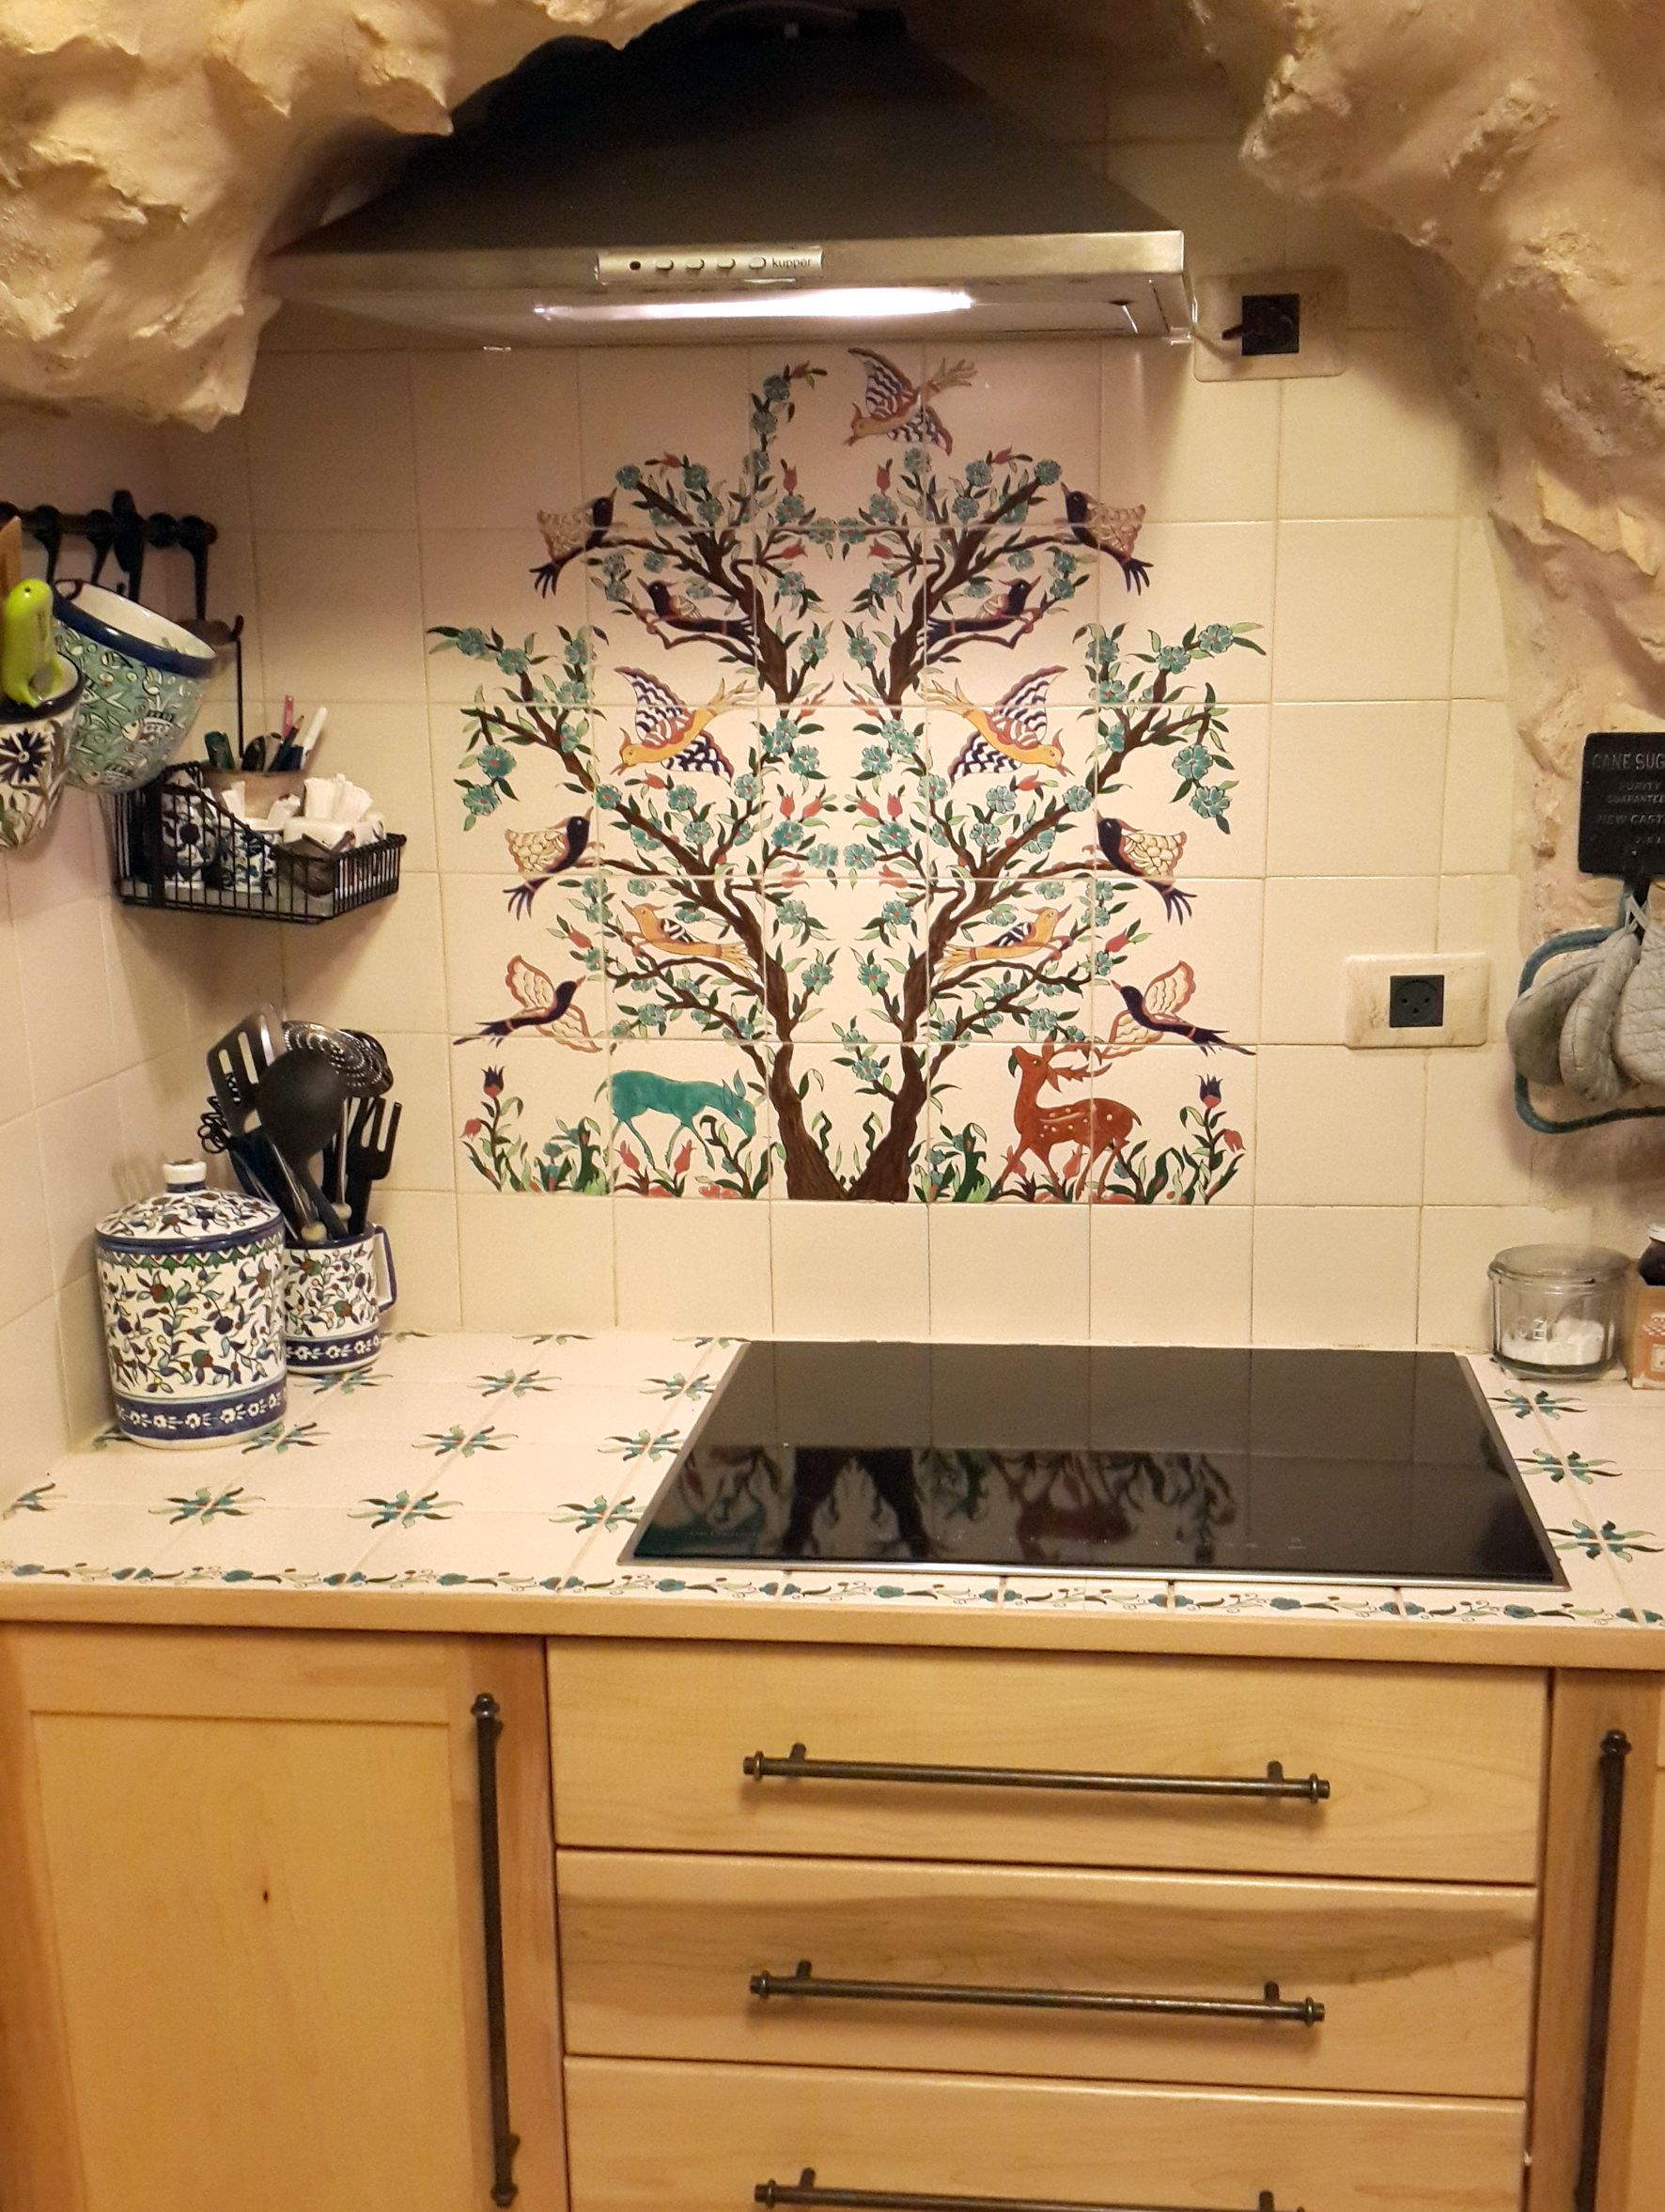 Hand Painted Ceramic Tile Mural Used As A Kitchen Backsplash Tile